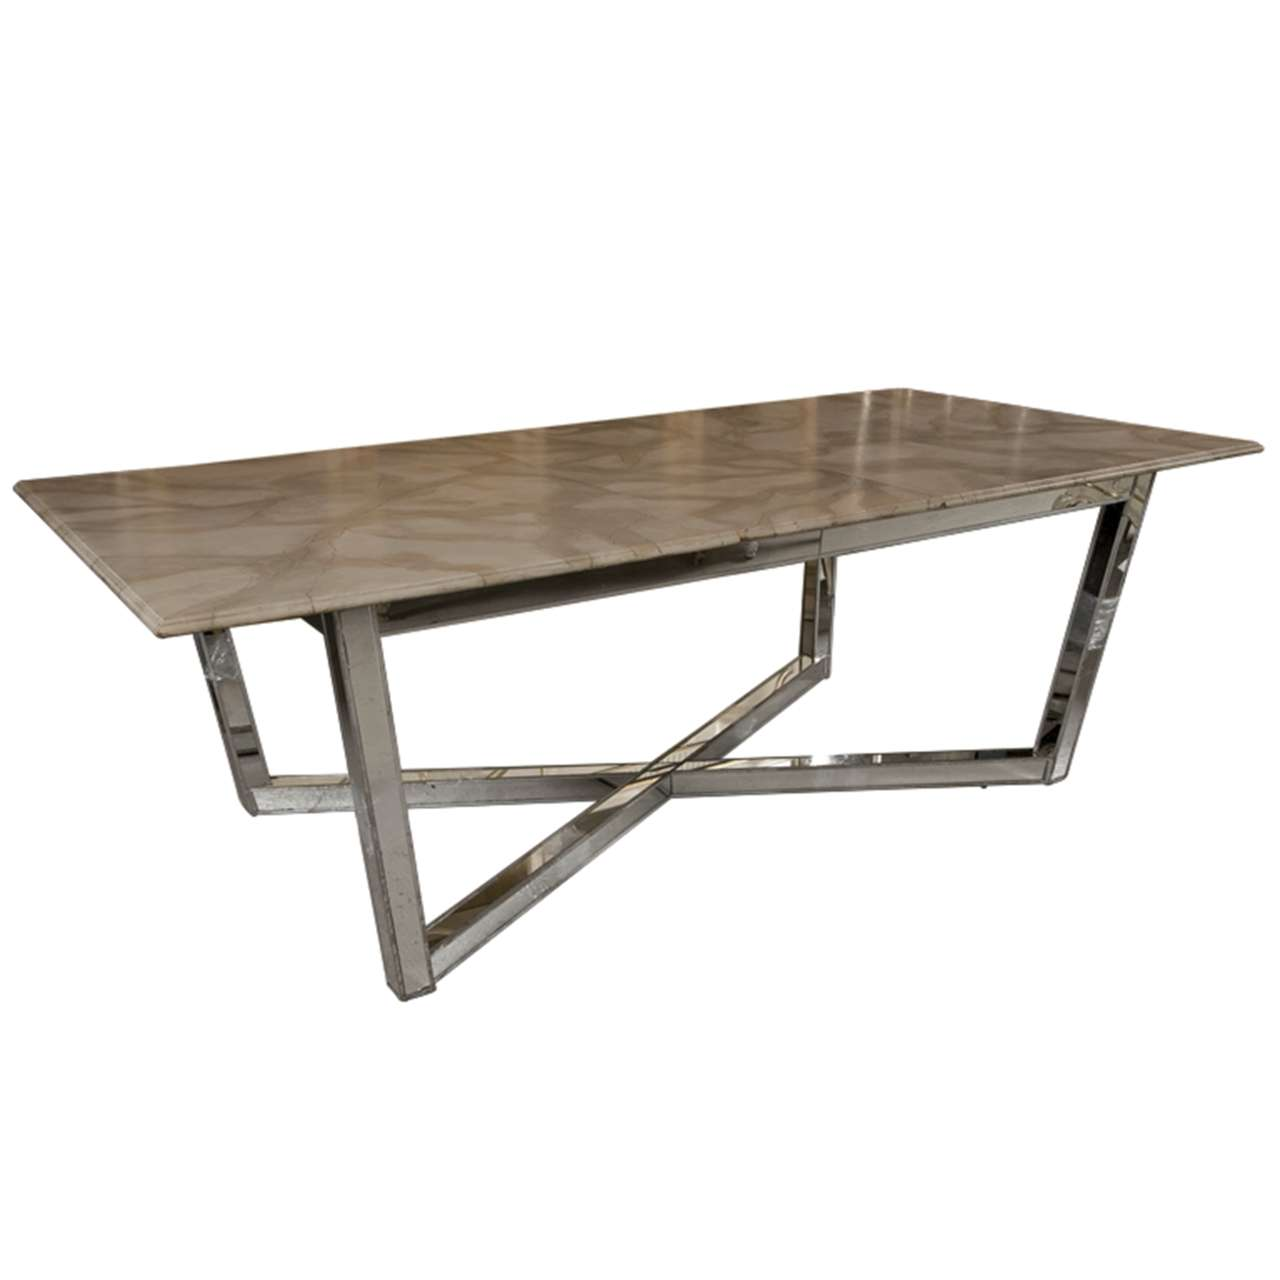 This Mirrored Base Faux Marble Top Dining Table Is No Longer Available